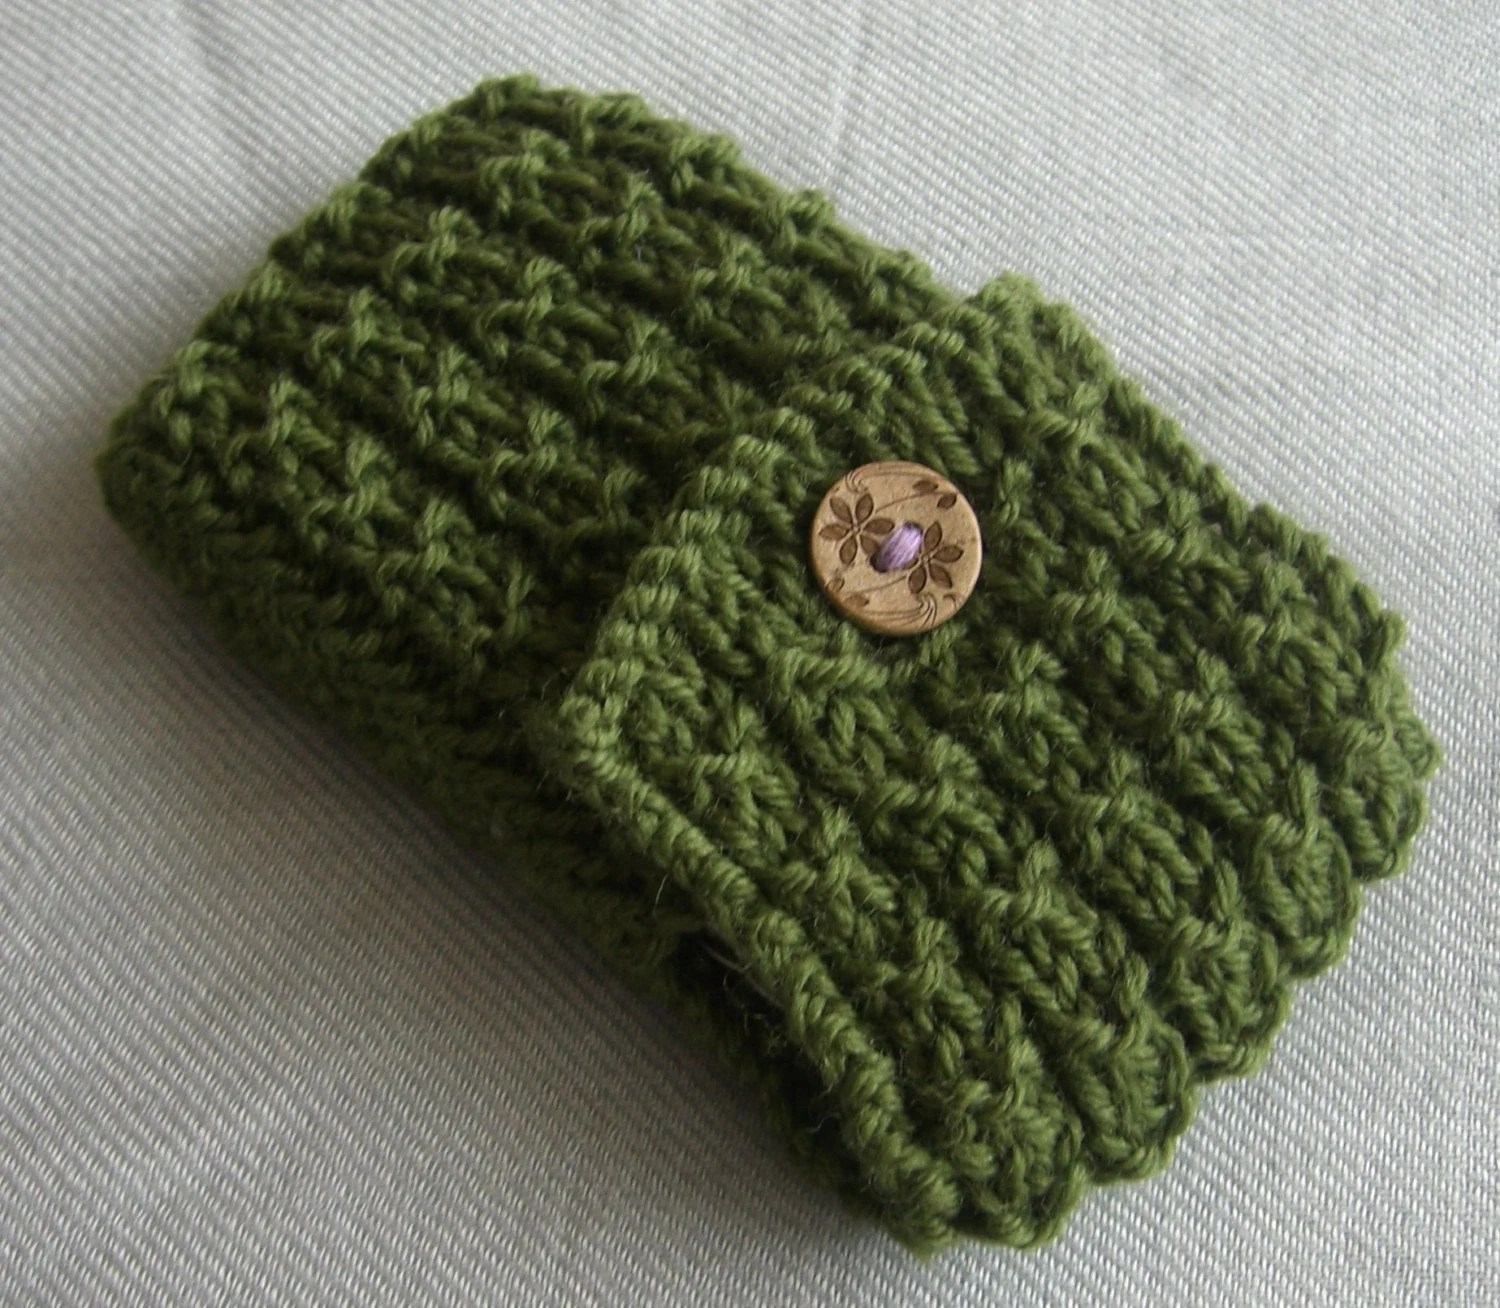 Sage green Blackberry/ iPhone case/ cozy/ hand knitted cover with pretty wooden button - other colours available